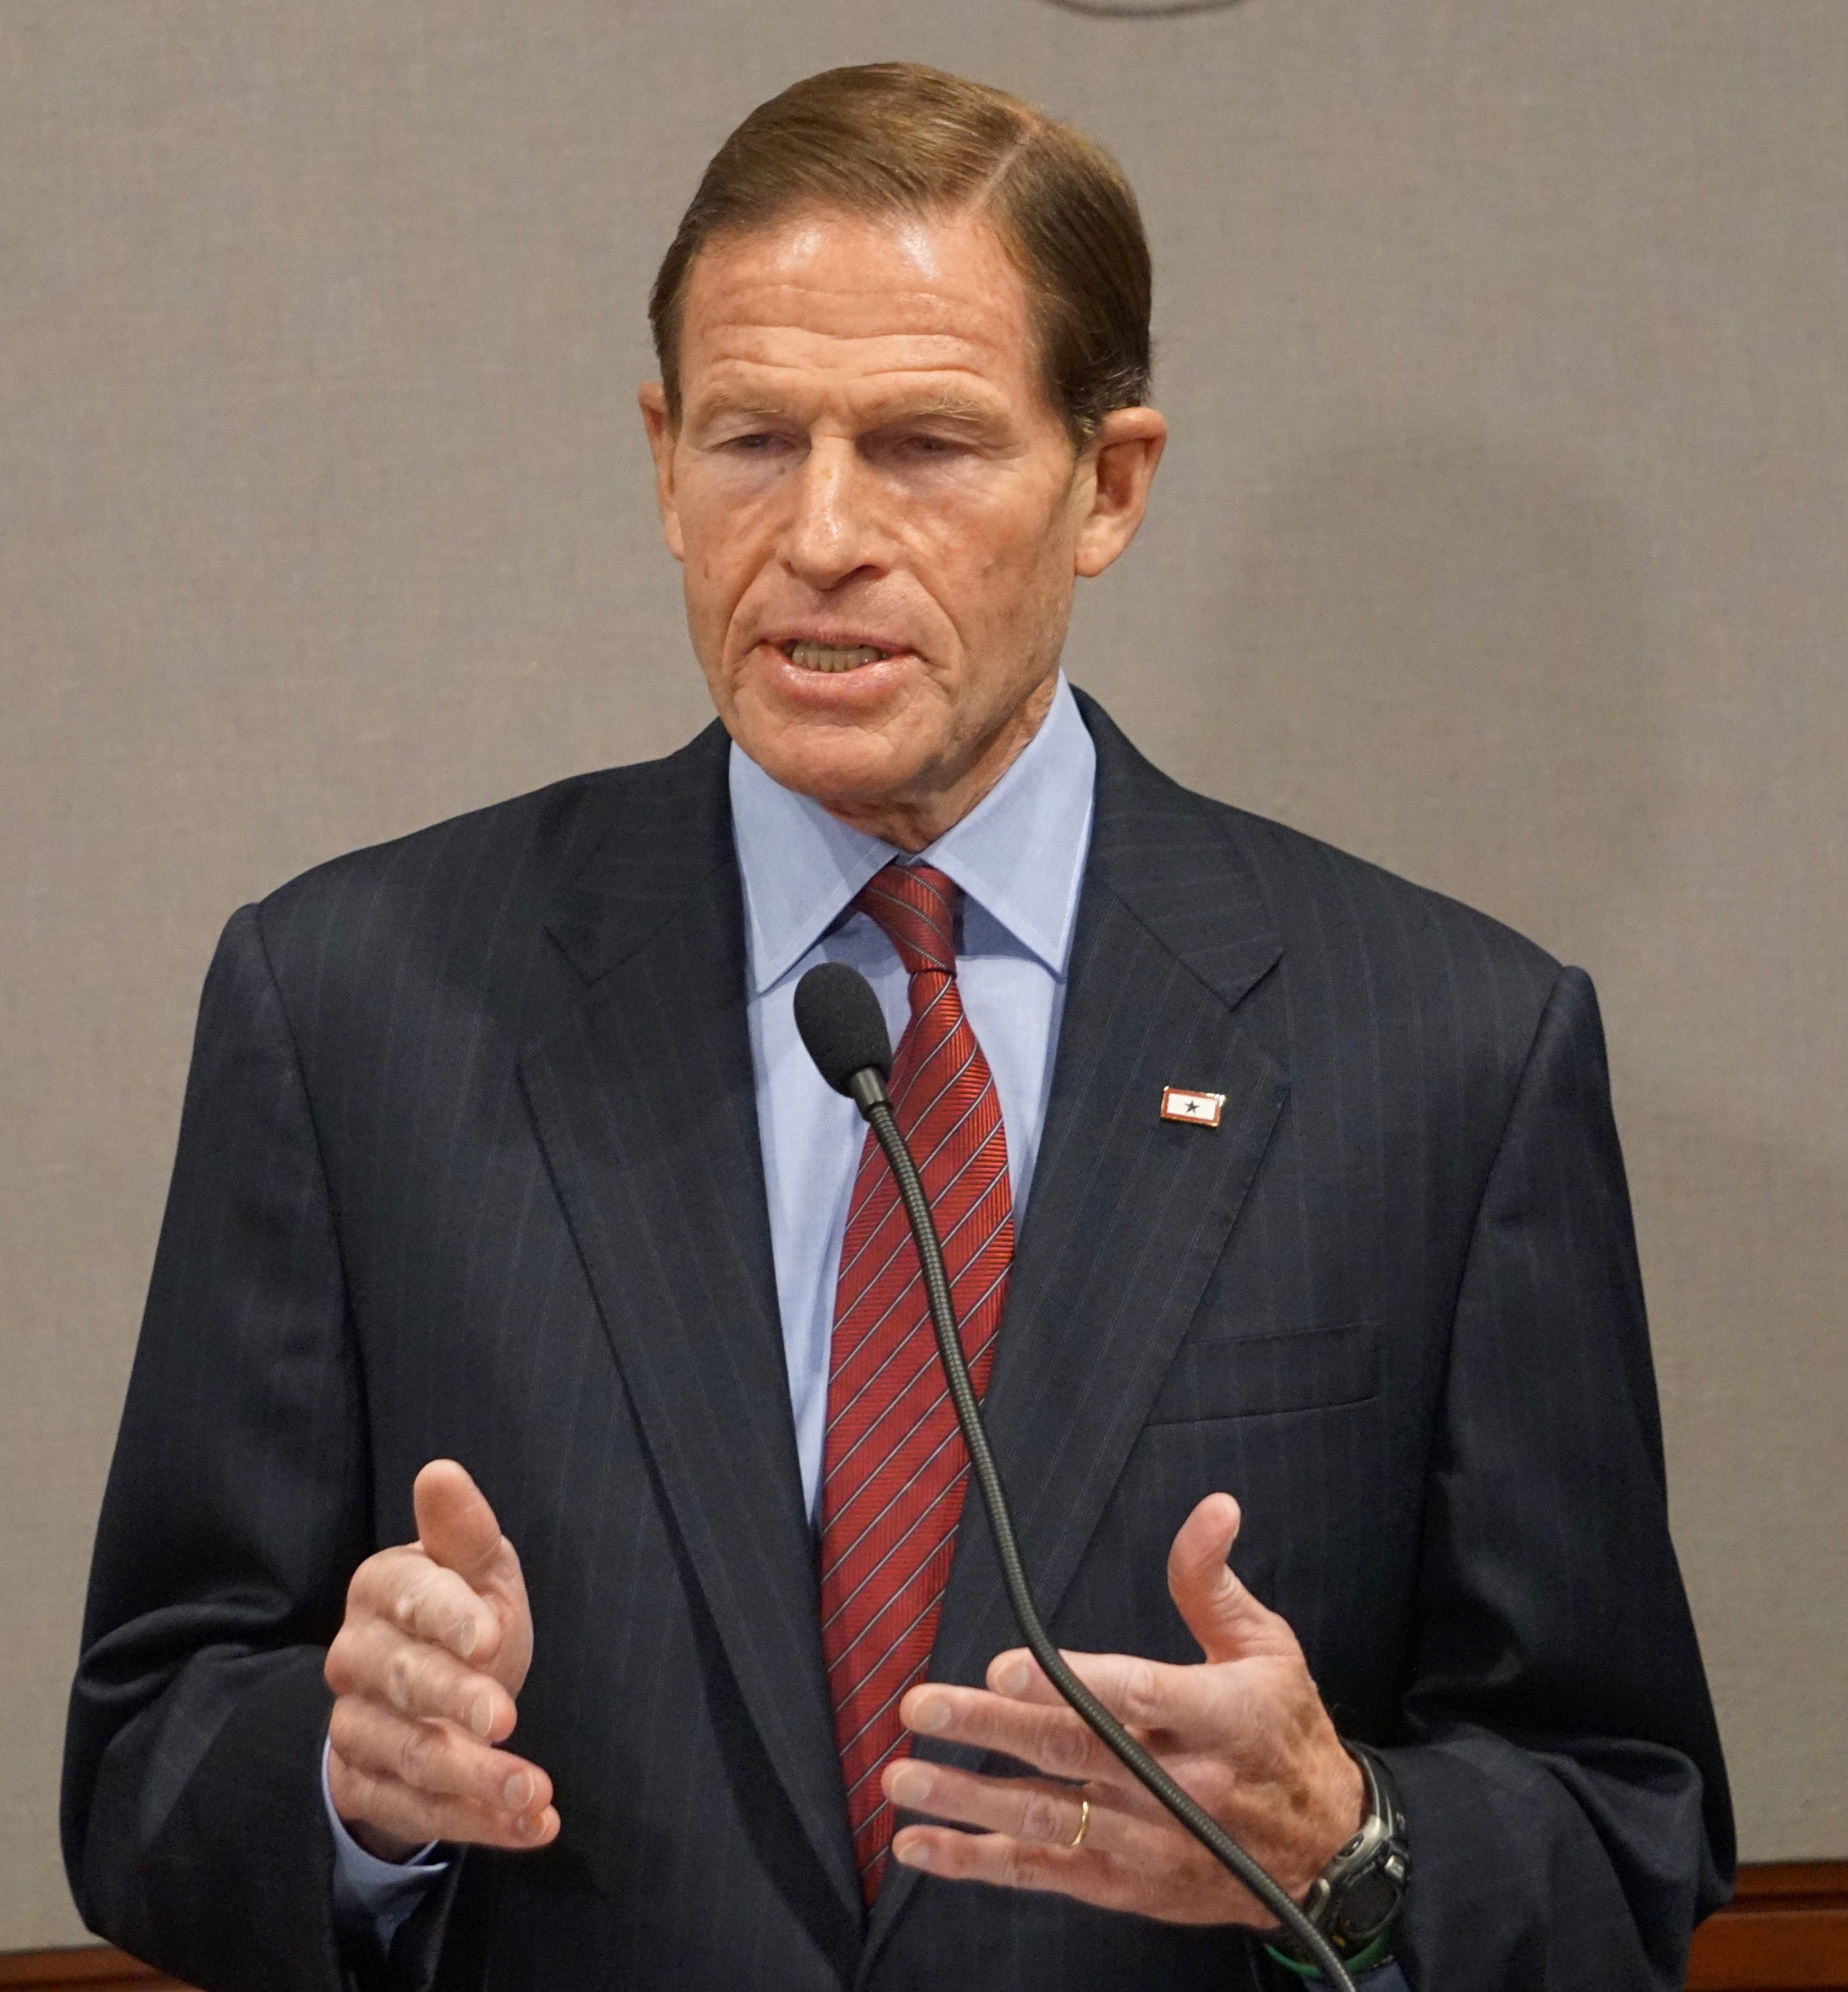 As states vie for new opioid-fighting grants, Blumenthal puts CT in the mix